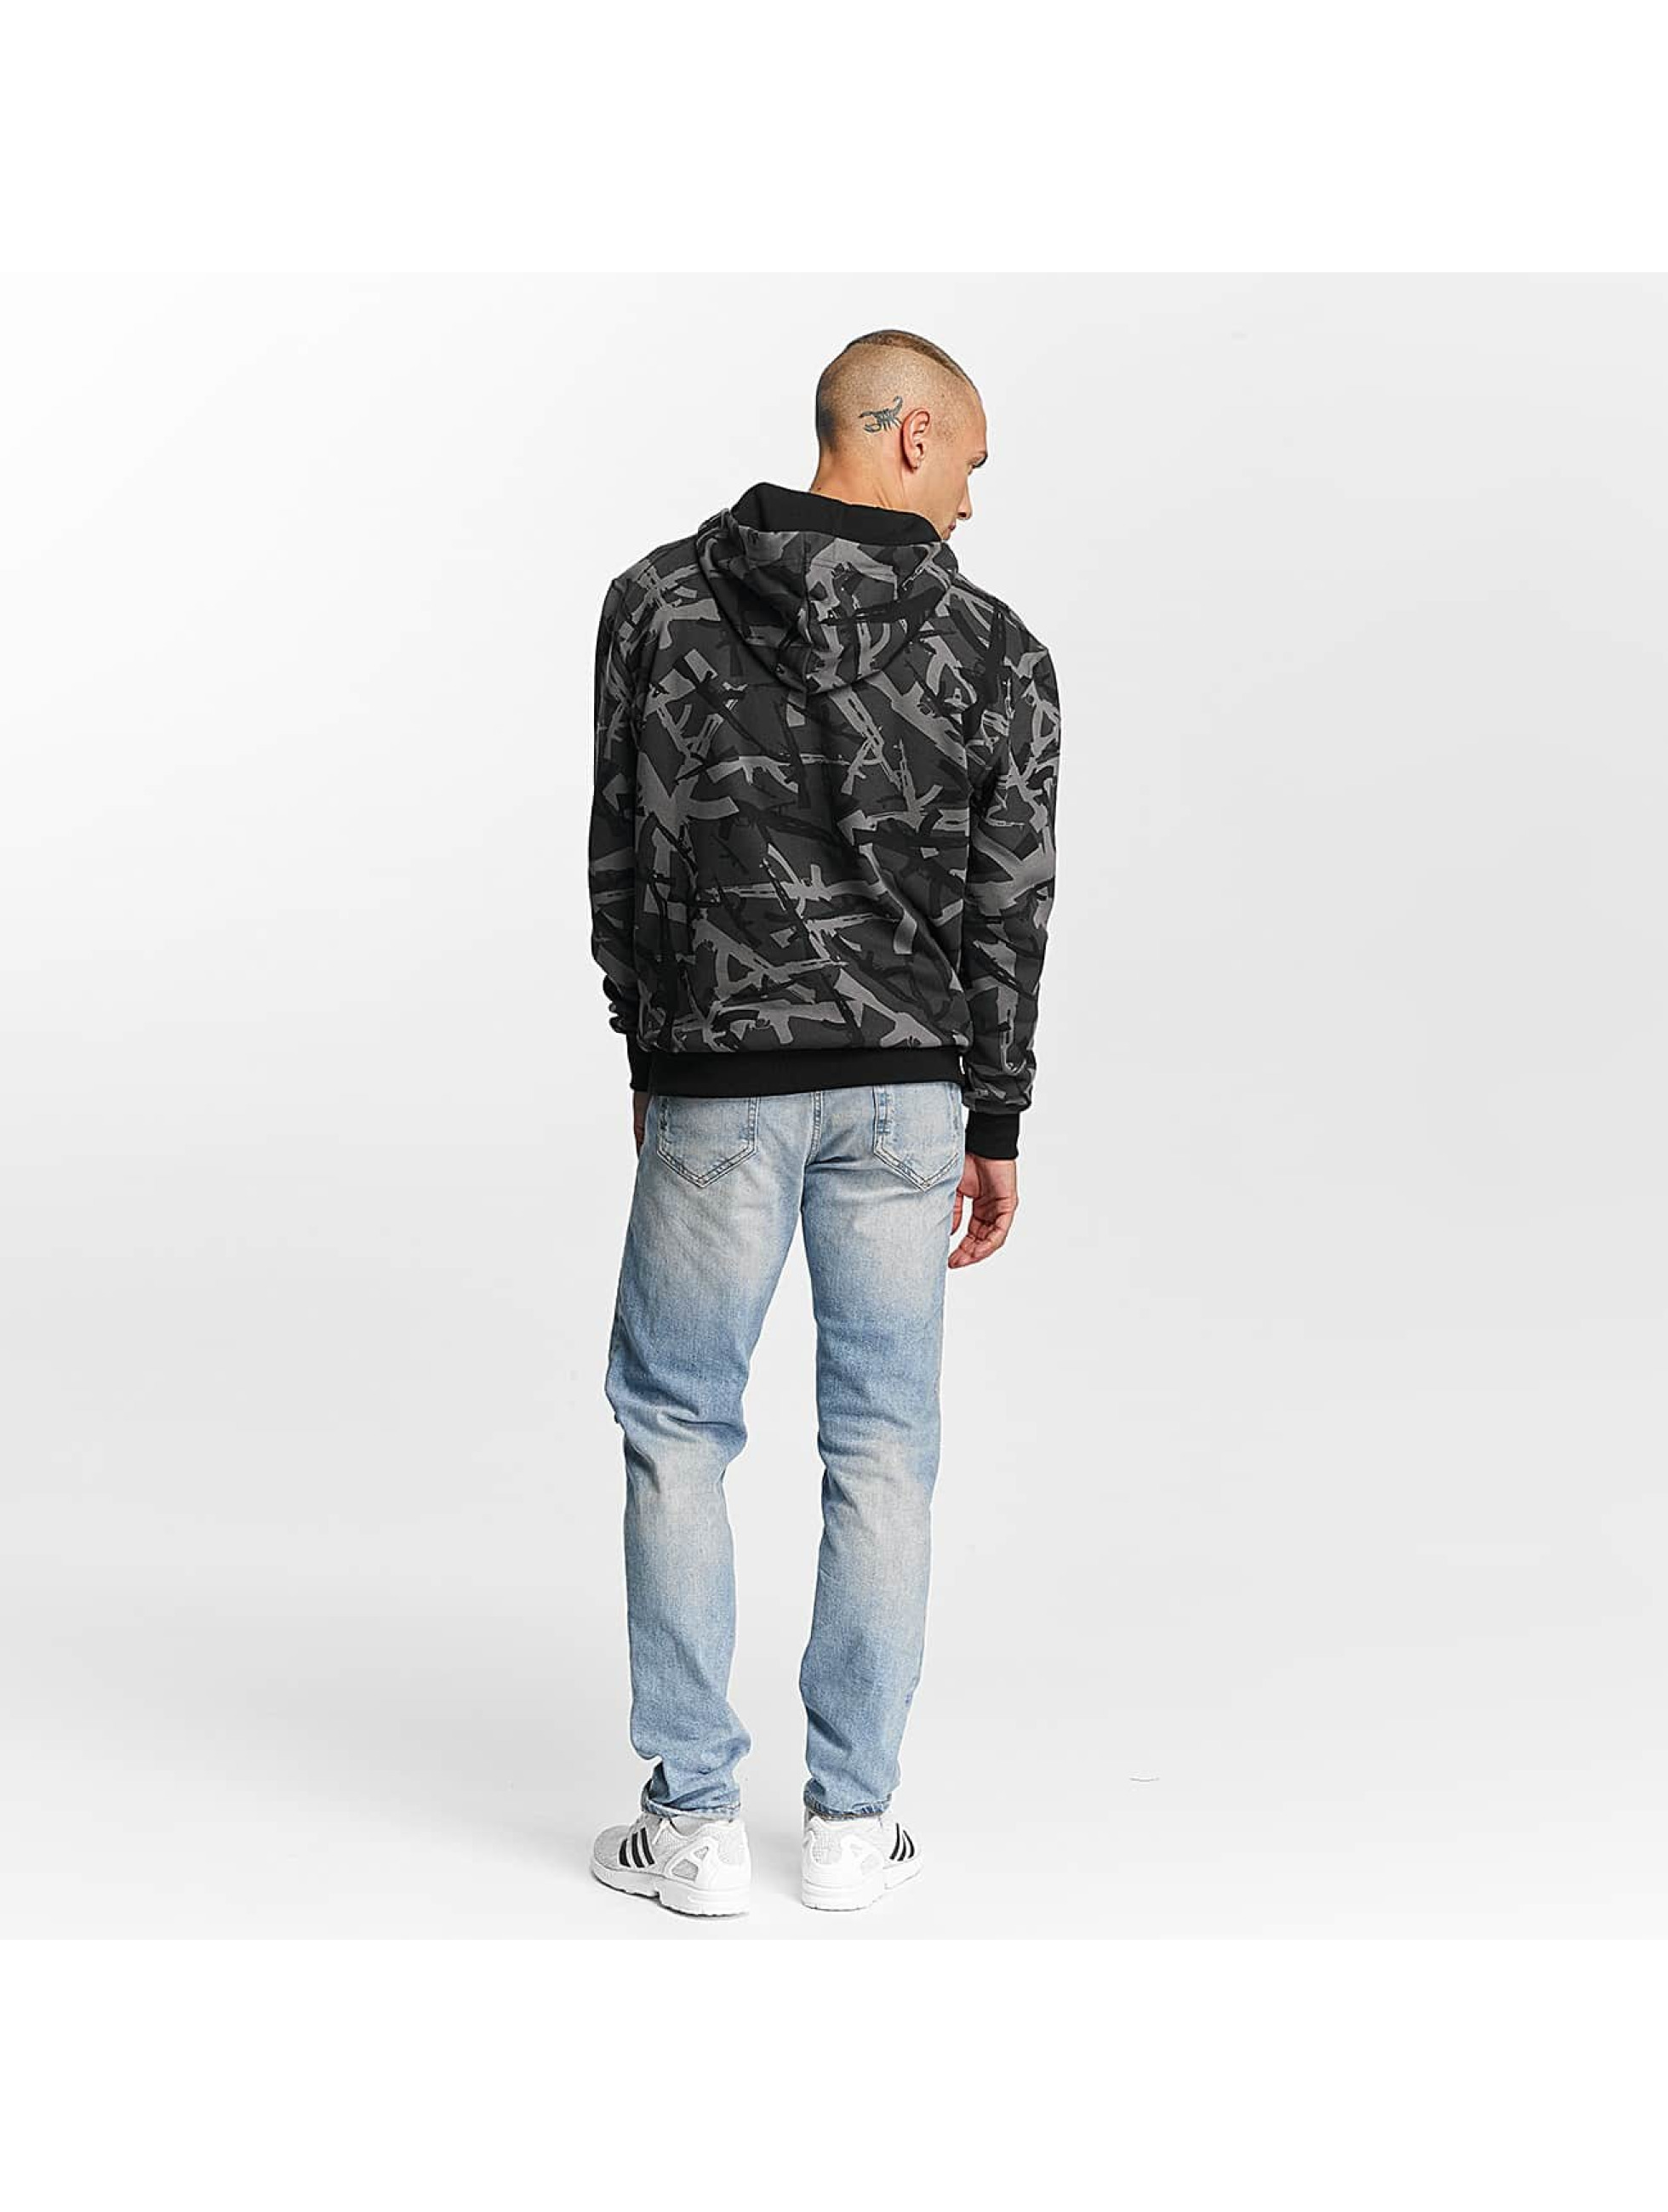 Pusher Apparel Sudadera AK Camo camuflaje